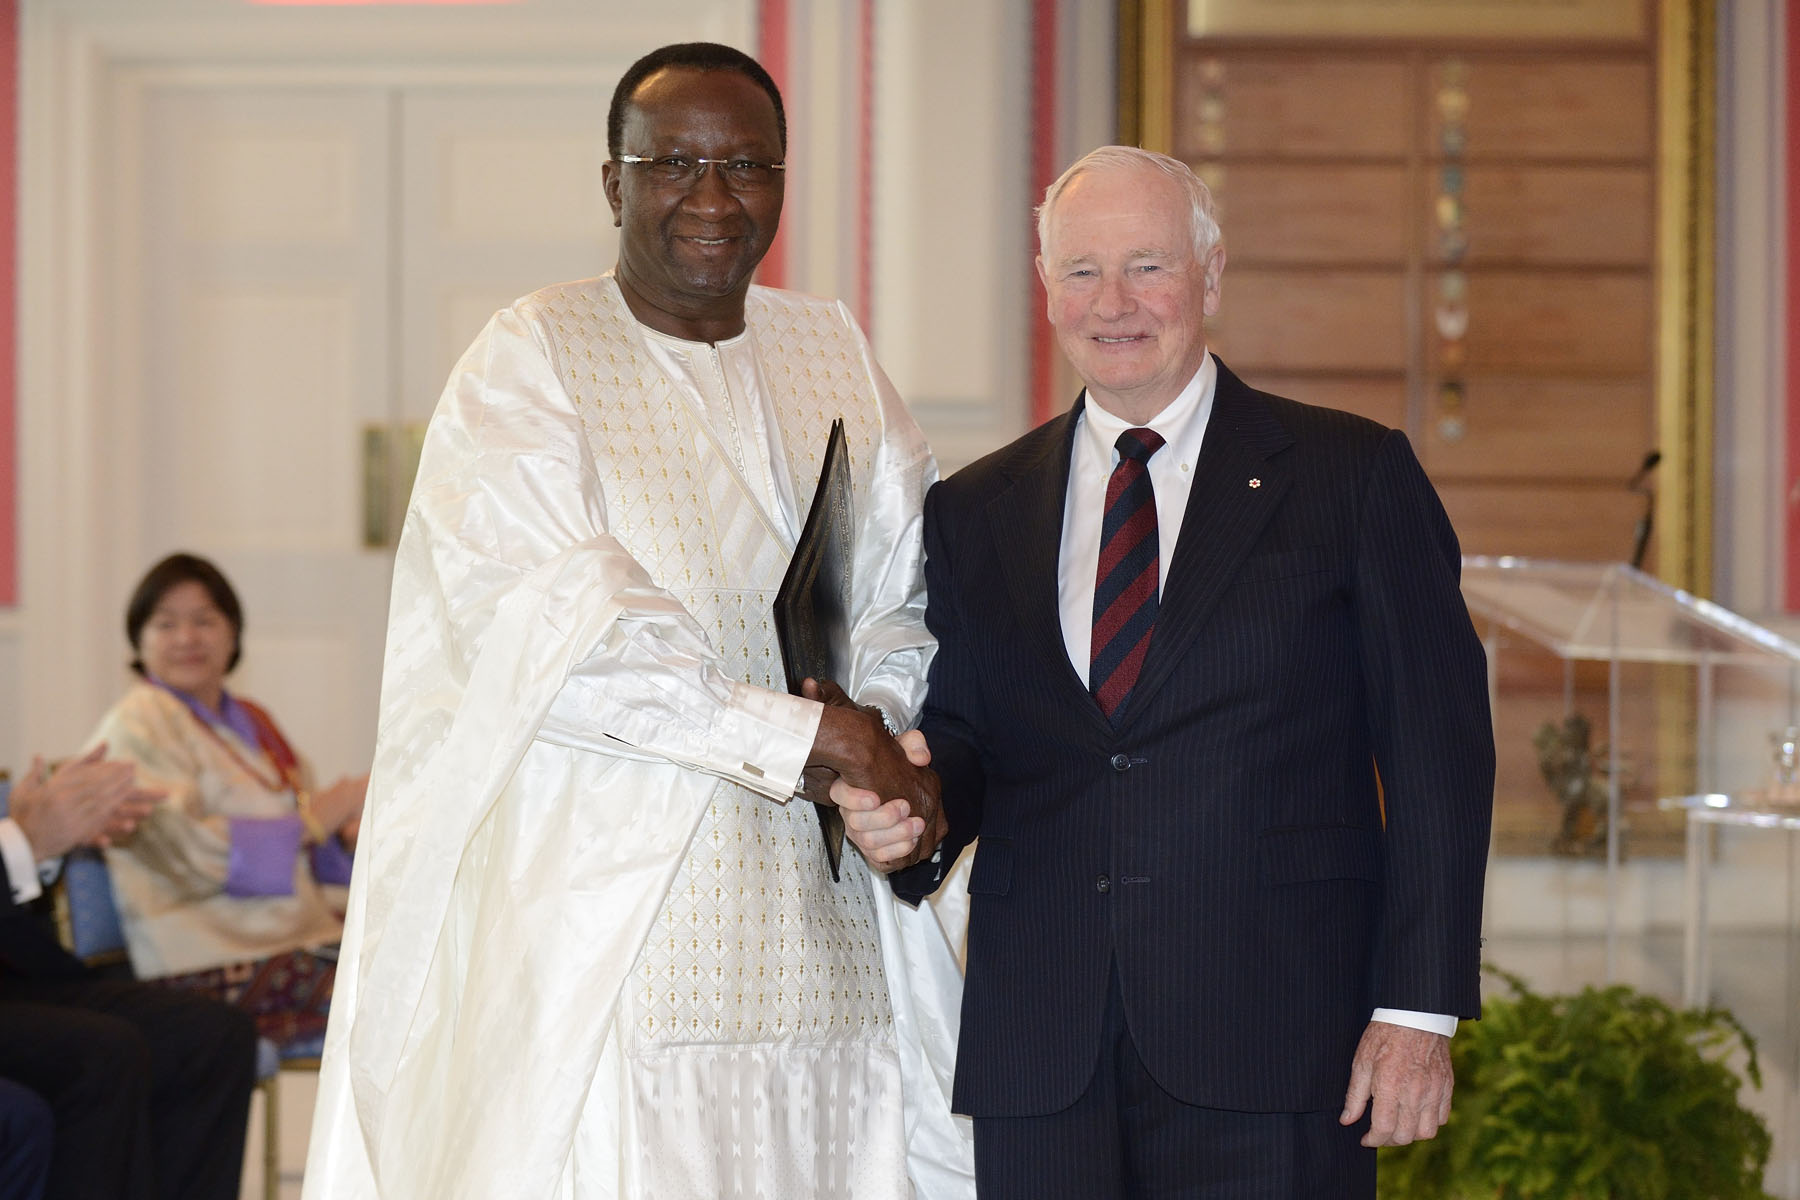 His Excellency Ousmane Paye, Ambassador of the Republic of Senegal, also presented his letters of credence.